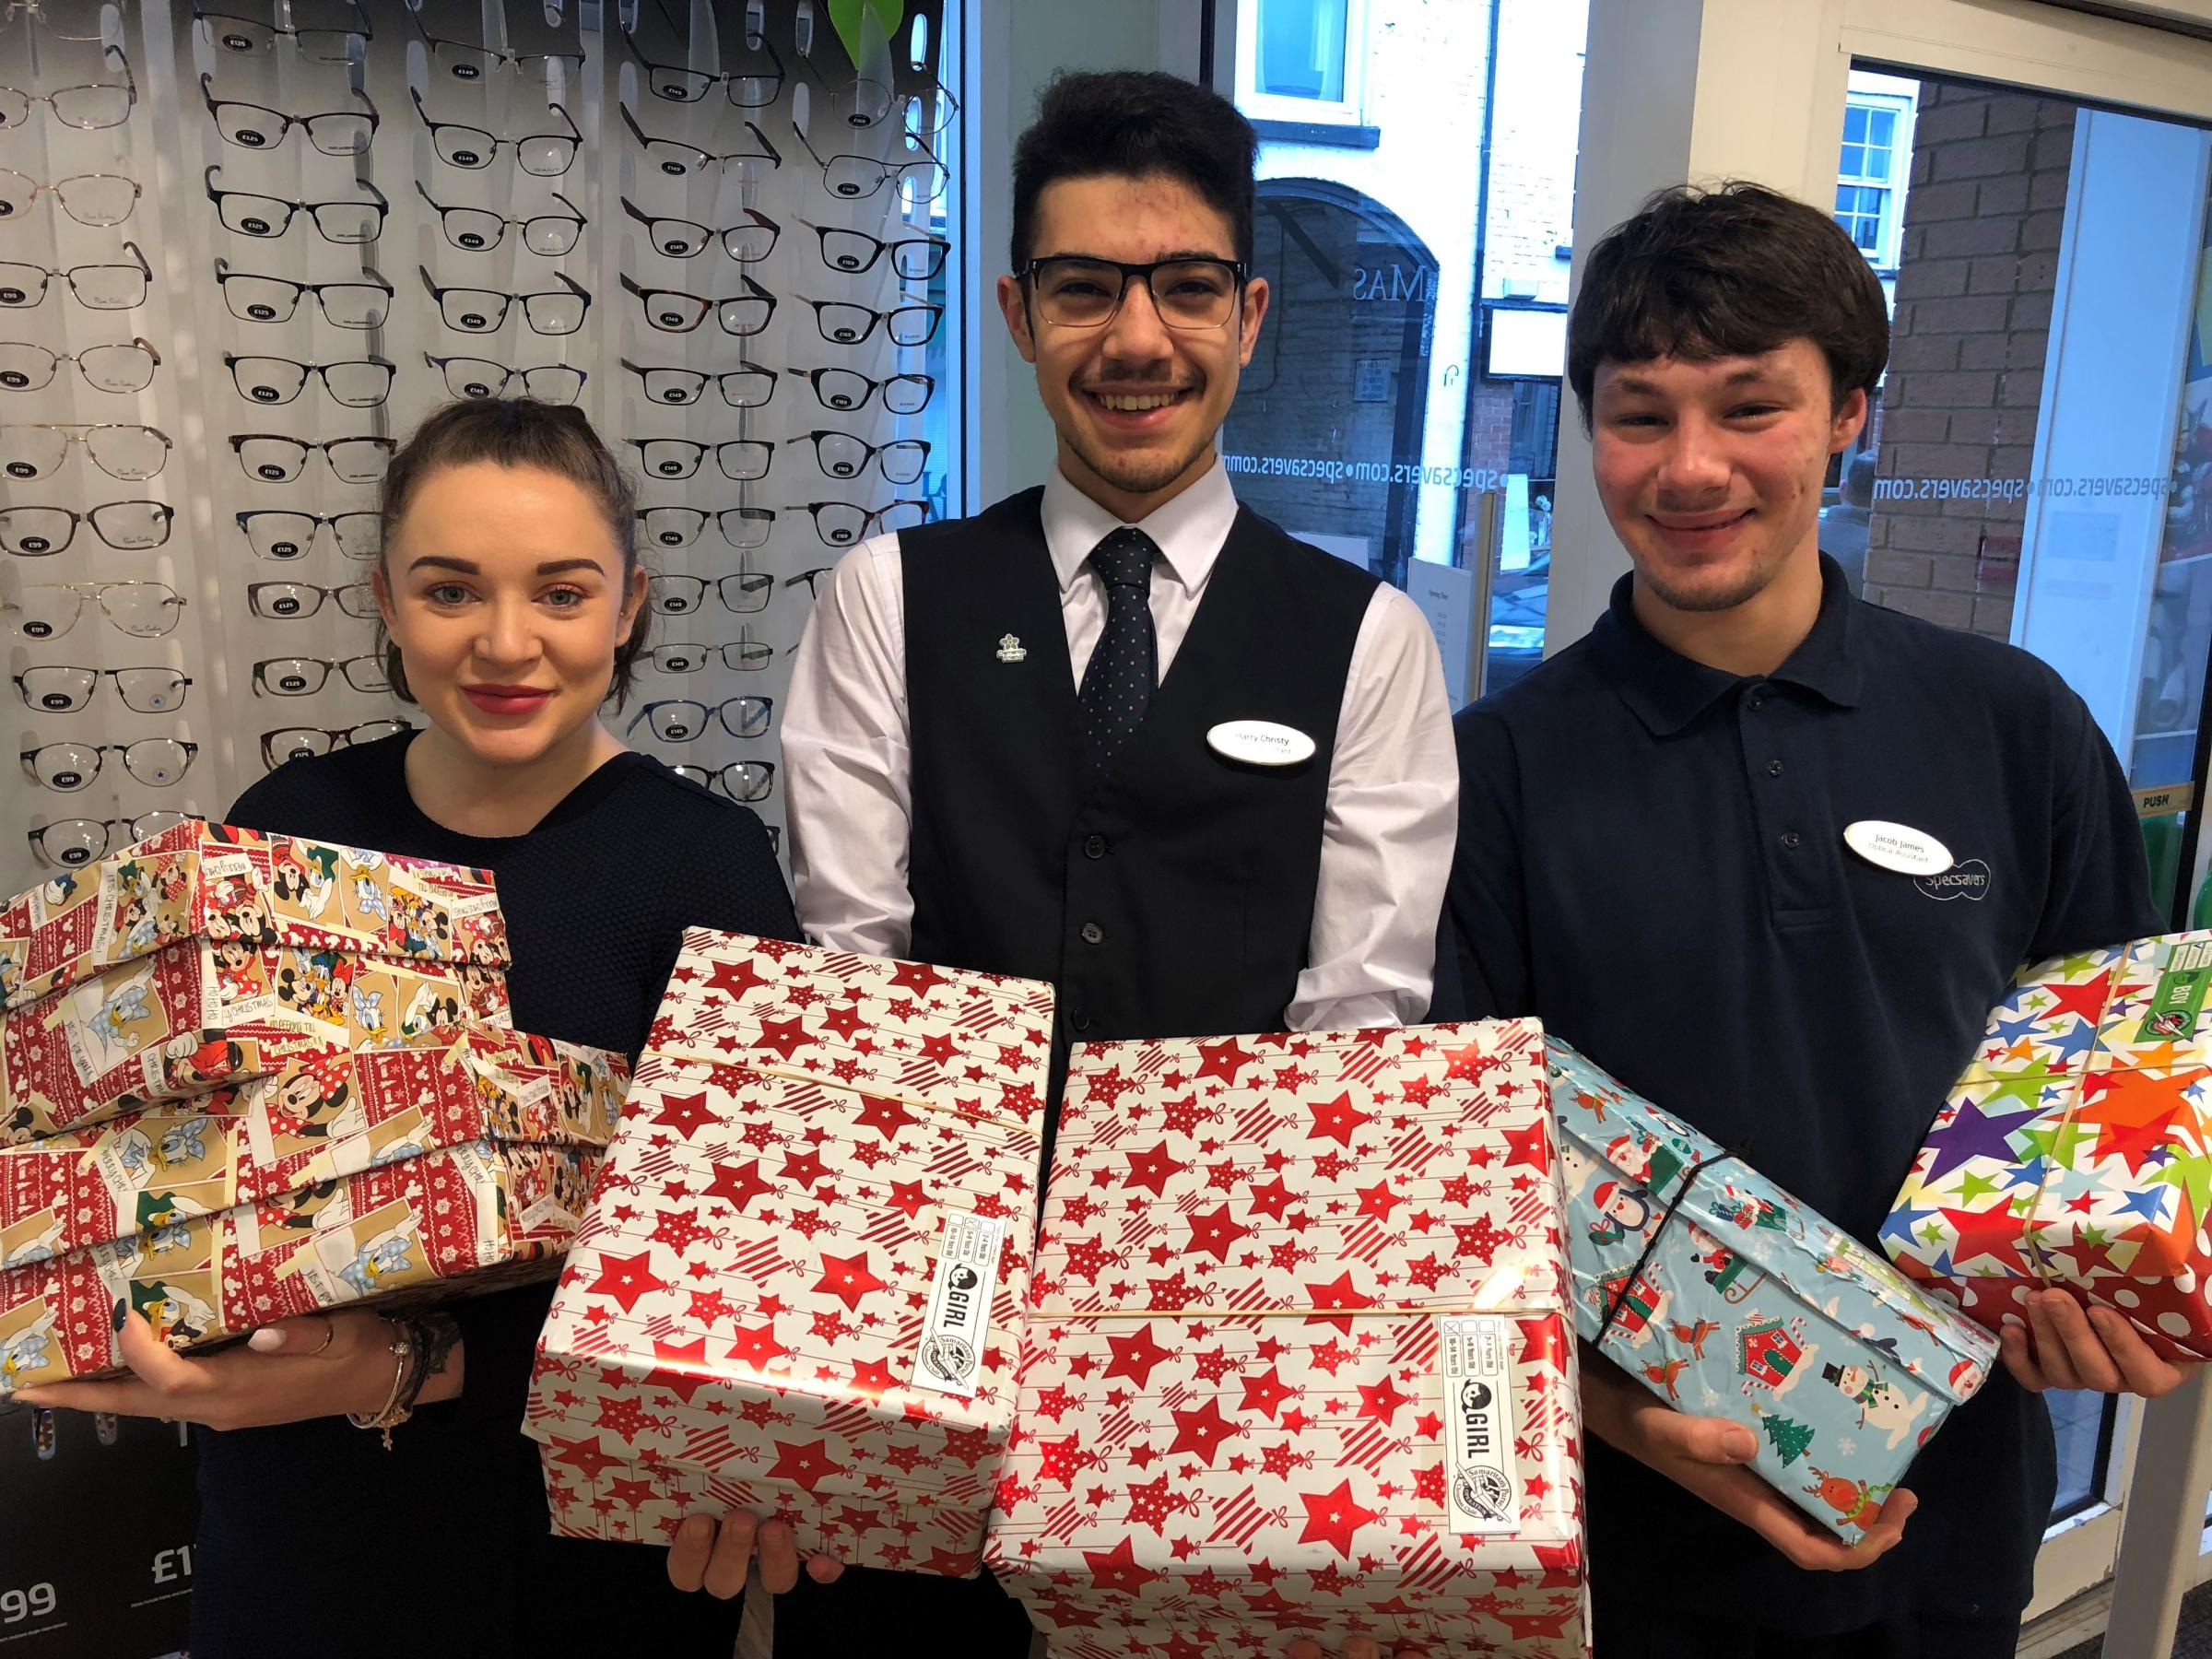 Leominster Specsavers staff Meg Morris, Harry Christy and Jacob James with some of the Christmas boxes.